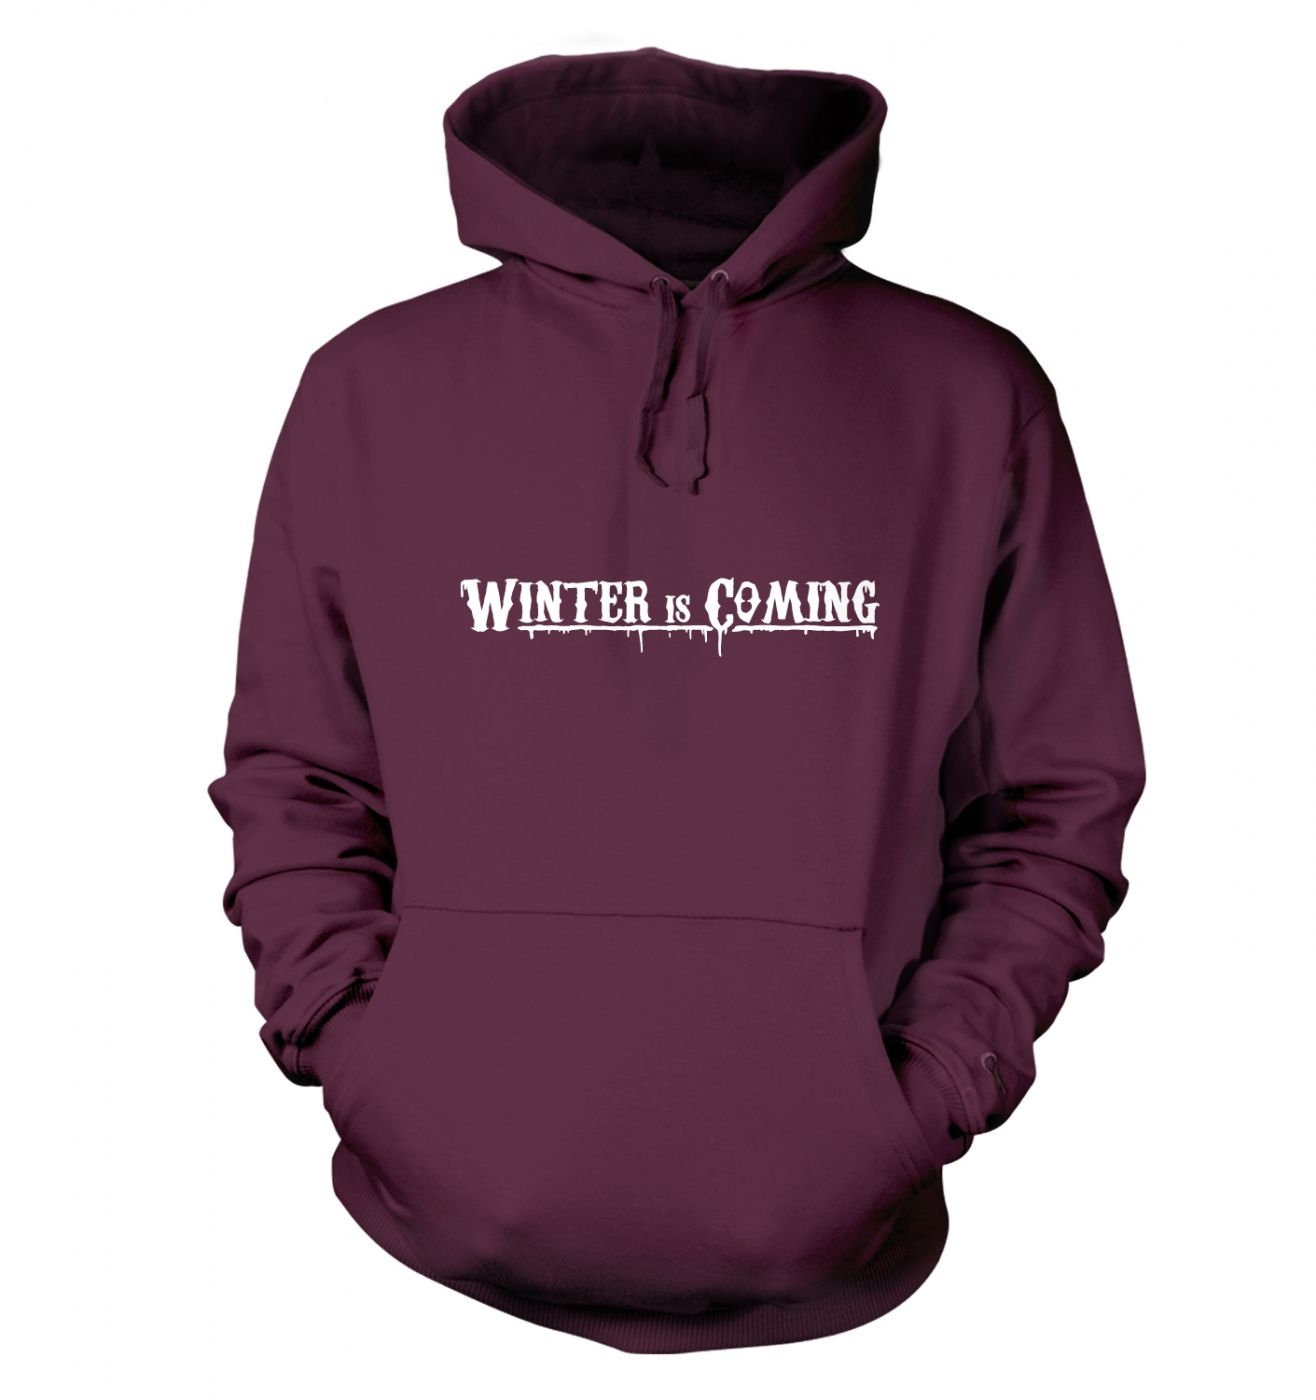 Winter Is Coming hoodie